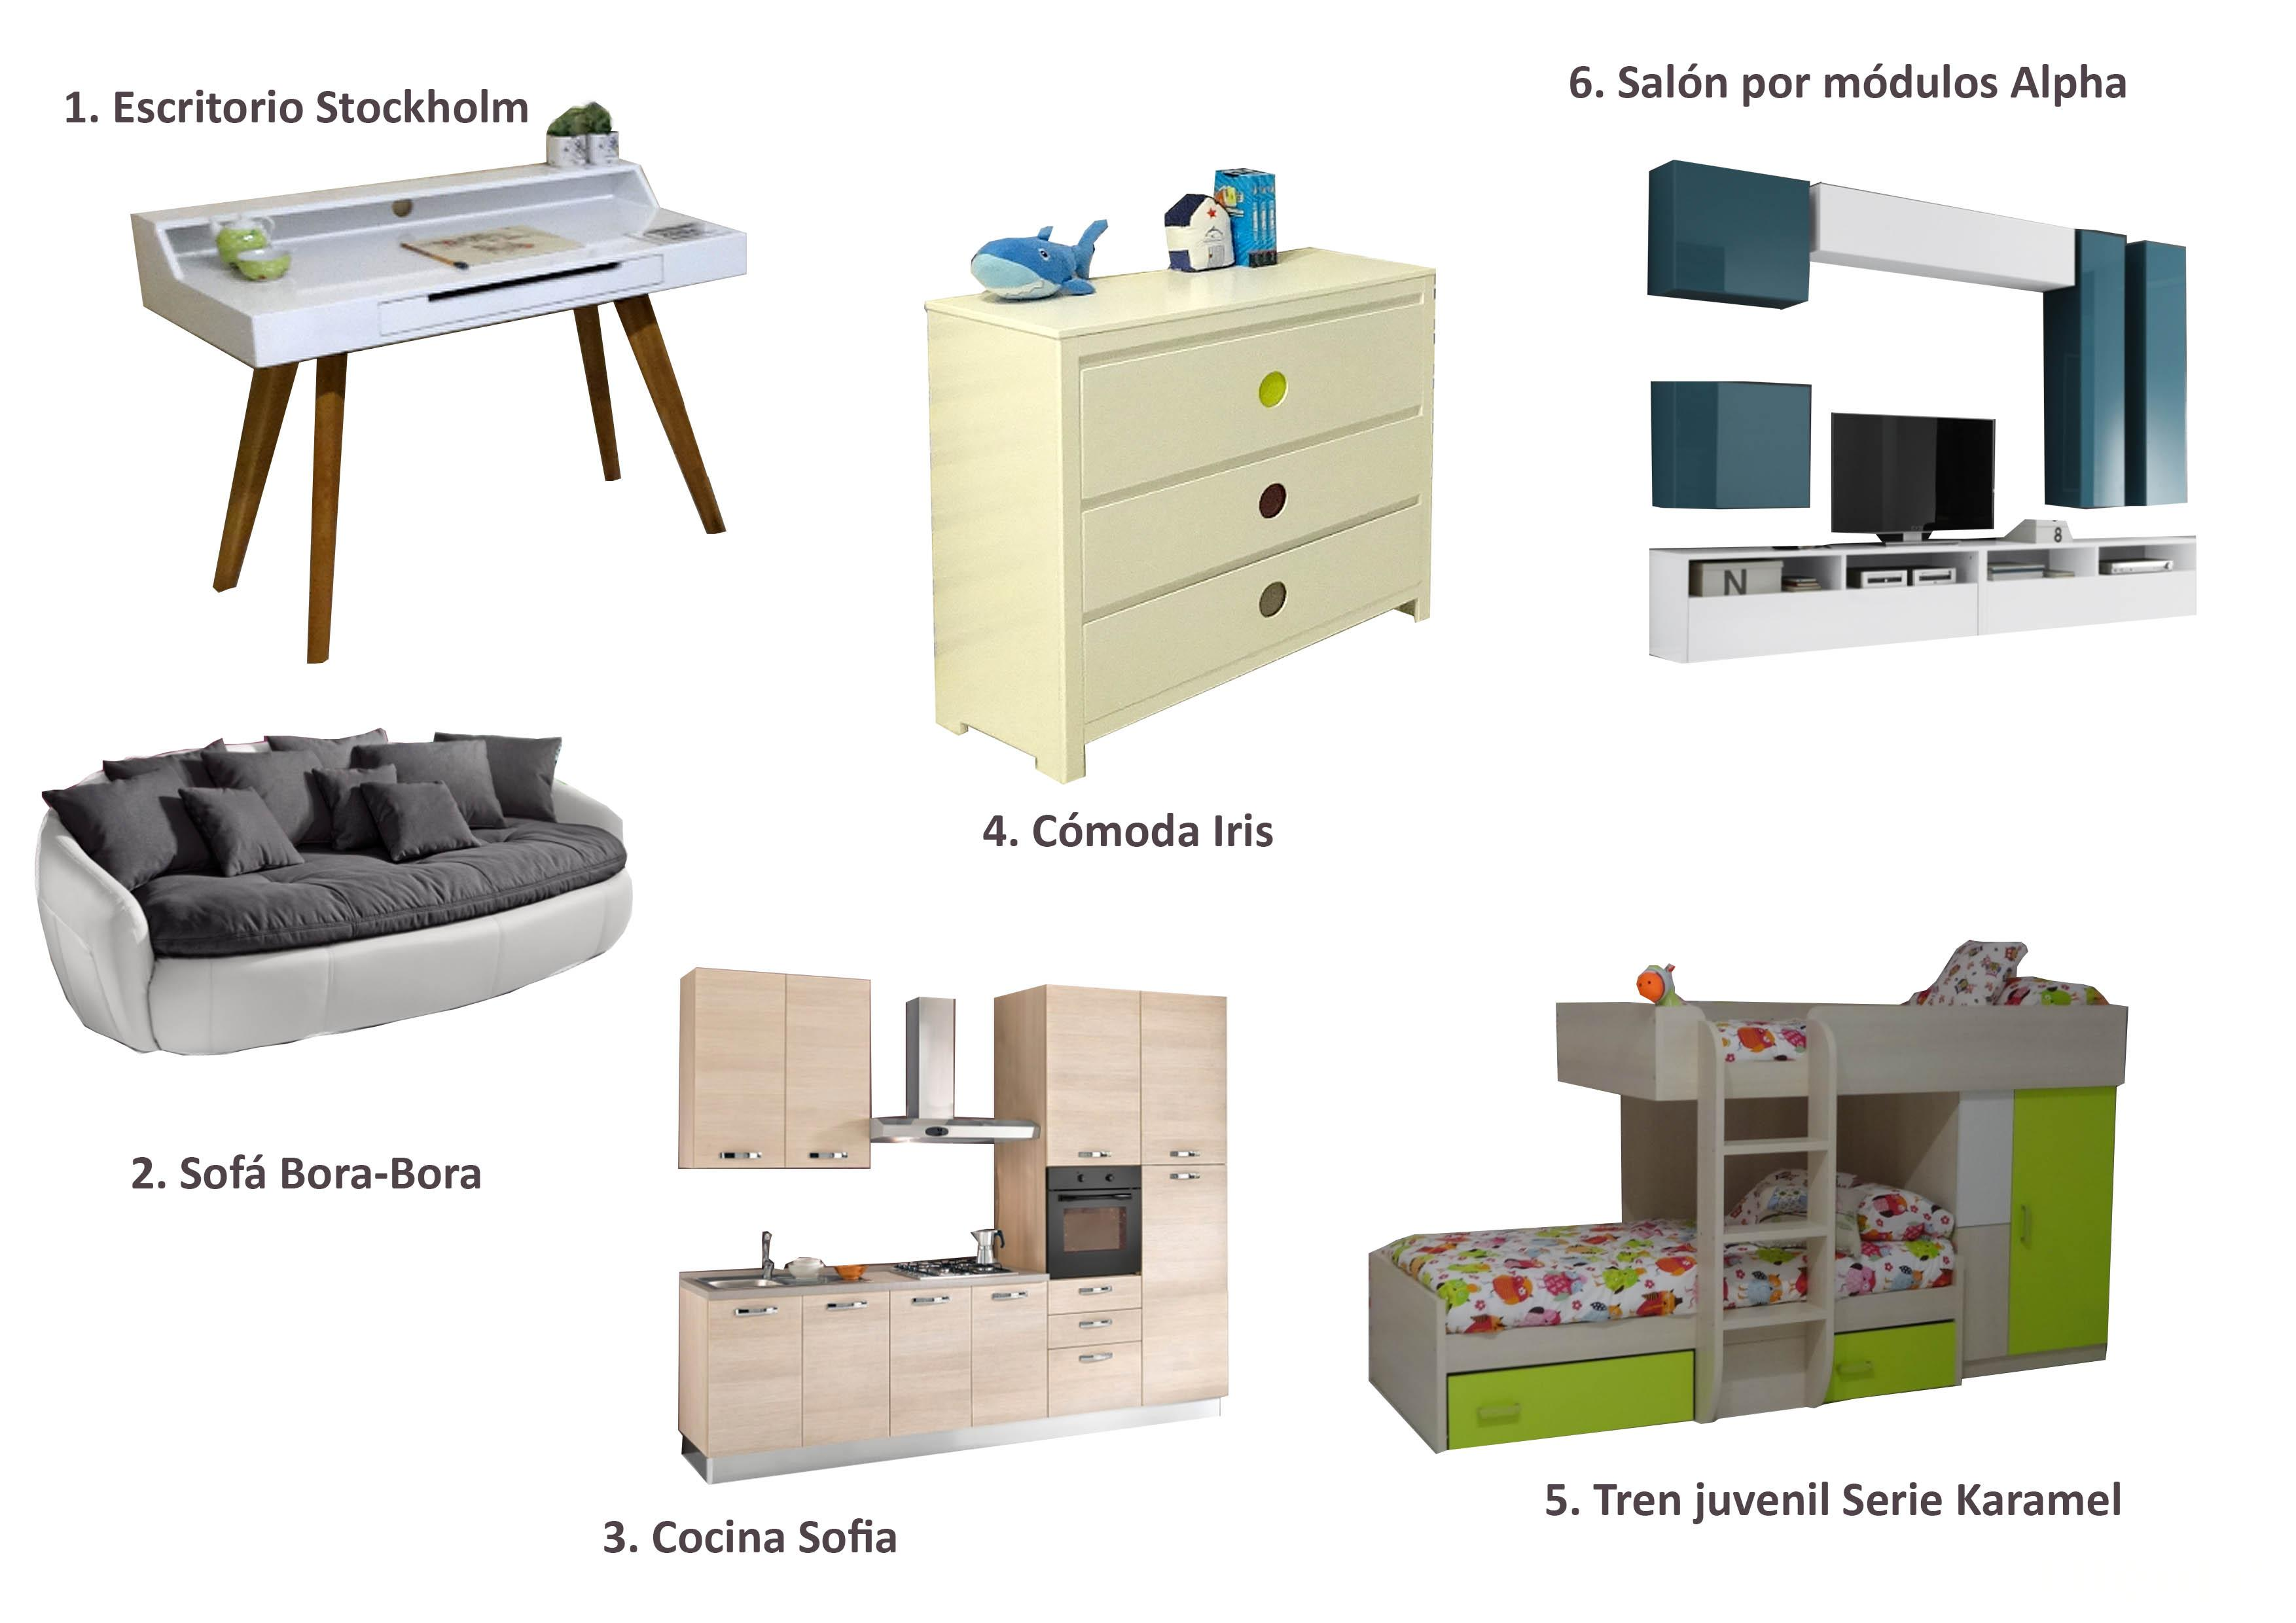 Dicoro Autor En Blog Con Ideas De Decoracion Ideas Para Decorar # Sonar Con Muebles Gigantes